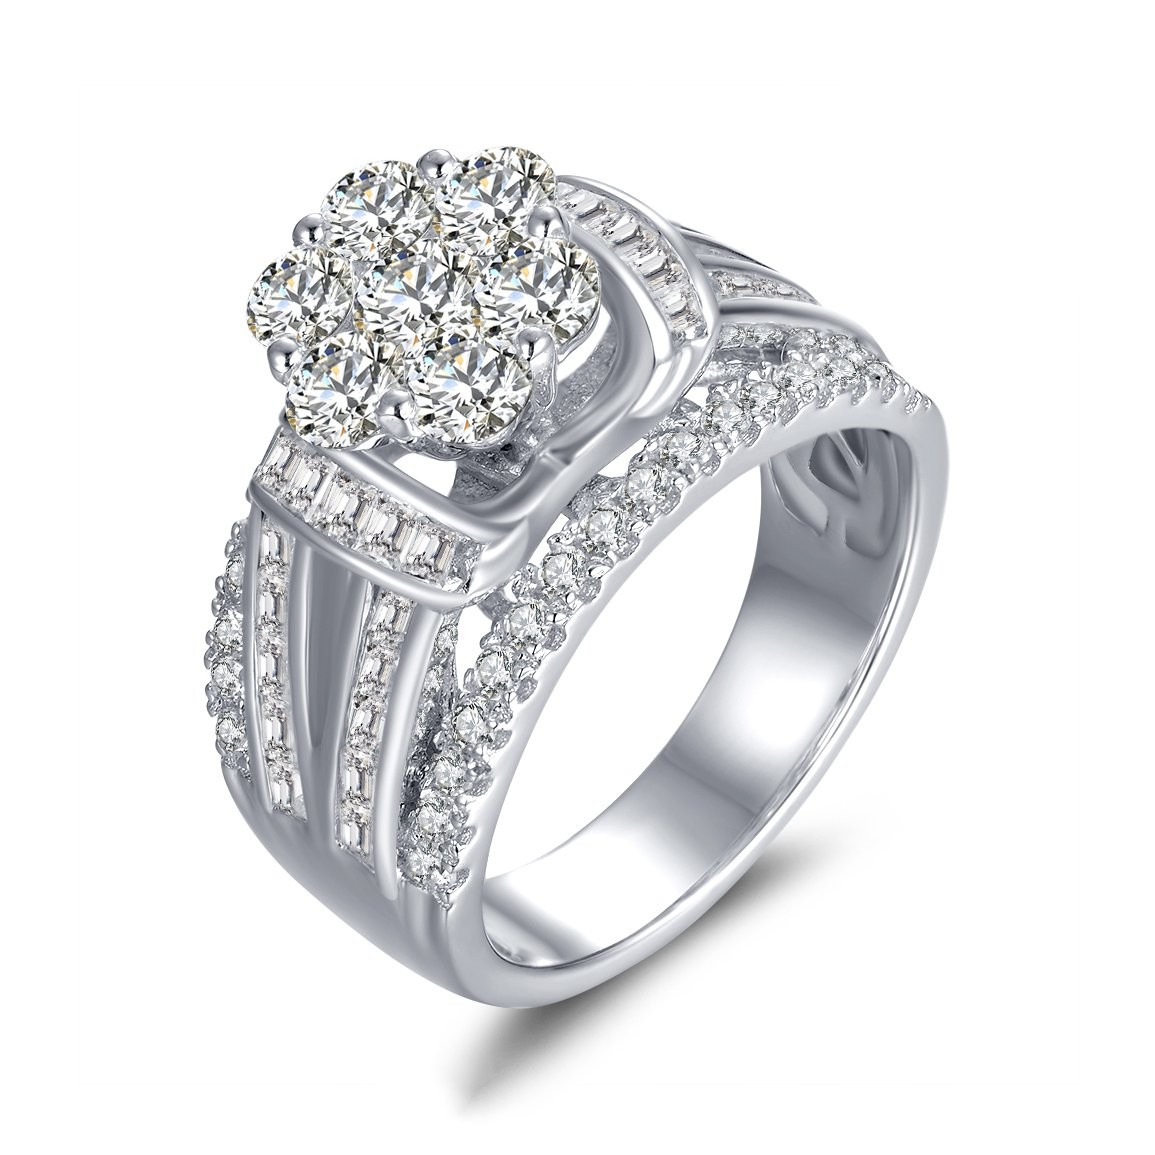 attn wedding why stories we rings history ring buy engagement jewellery diamonds do